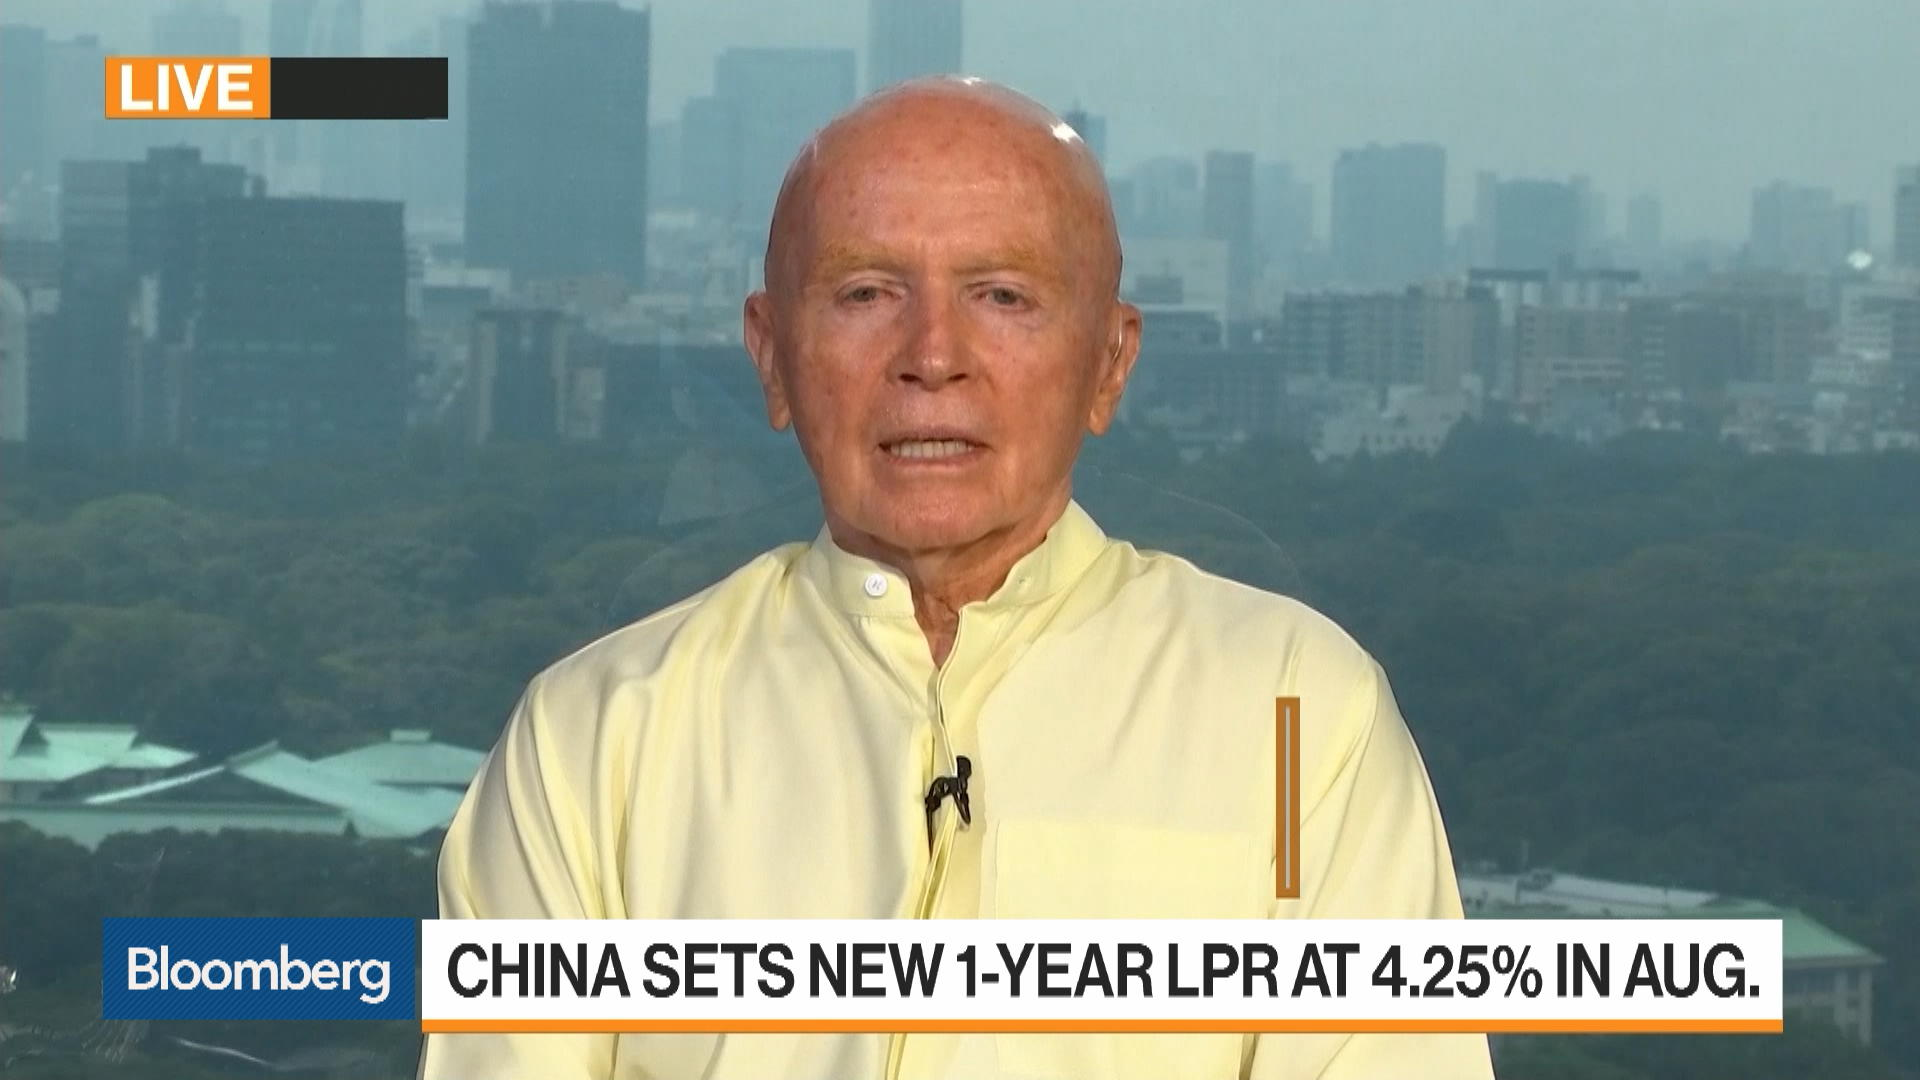 Mark Mobius Sees Many Opportunities in China to Buy Good Stocks